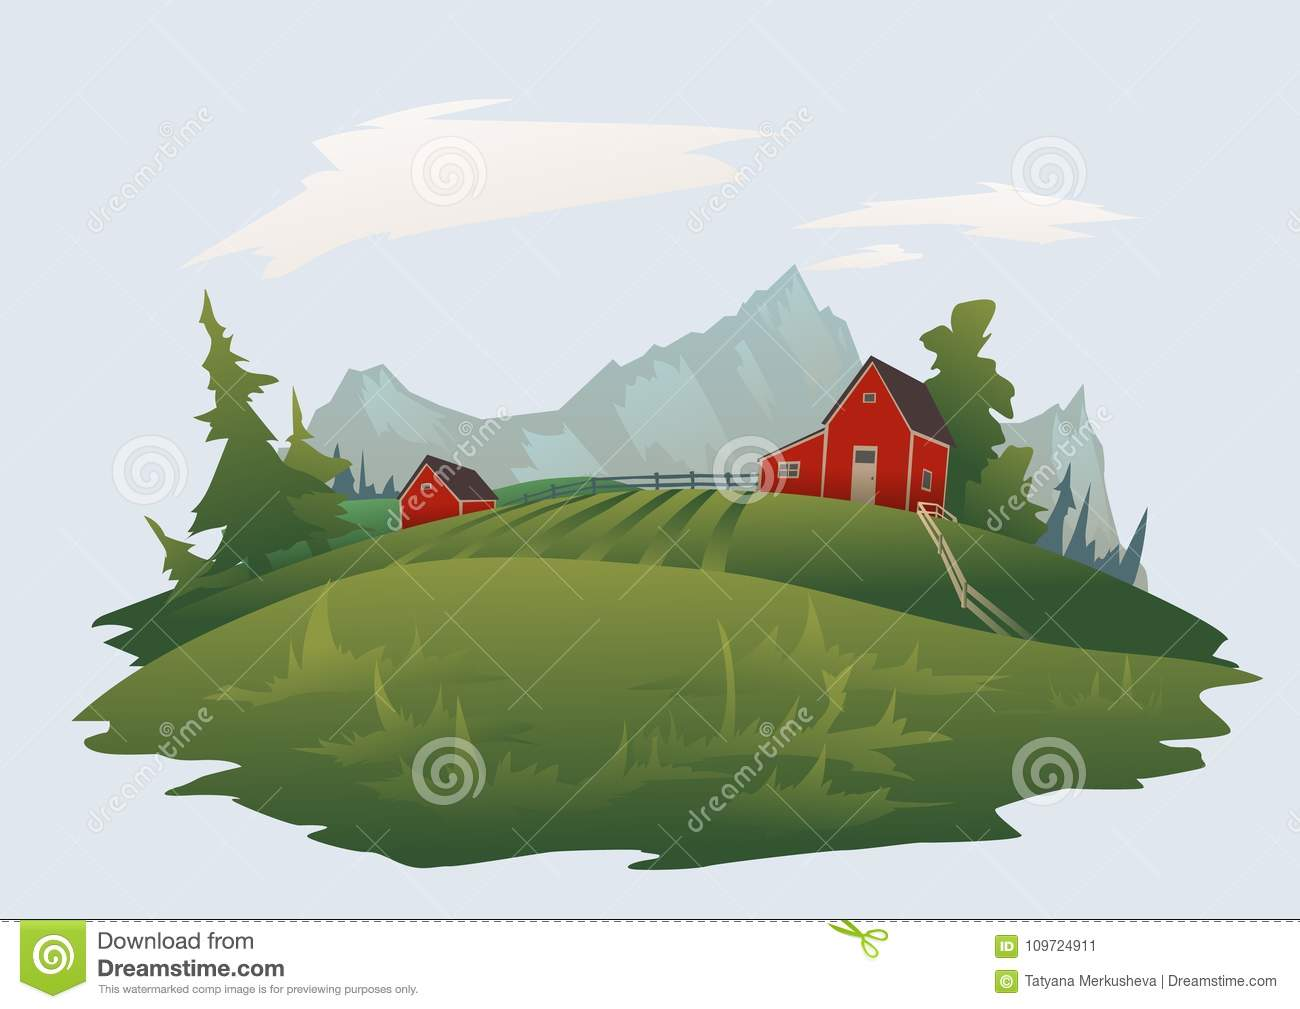 Farm or ranch in the mountain alpine landscape. Isolated vector illustration.